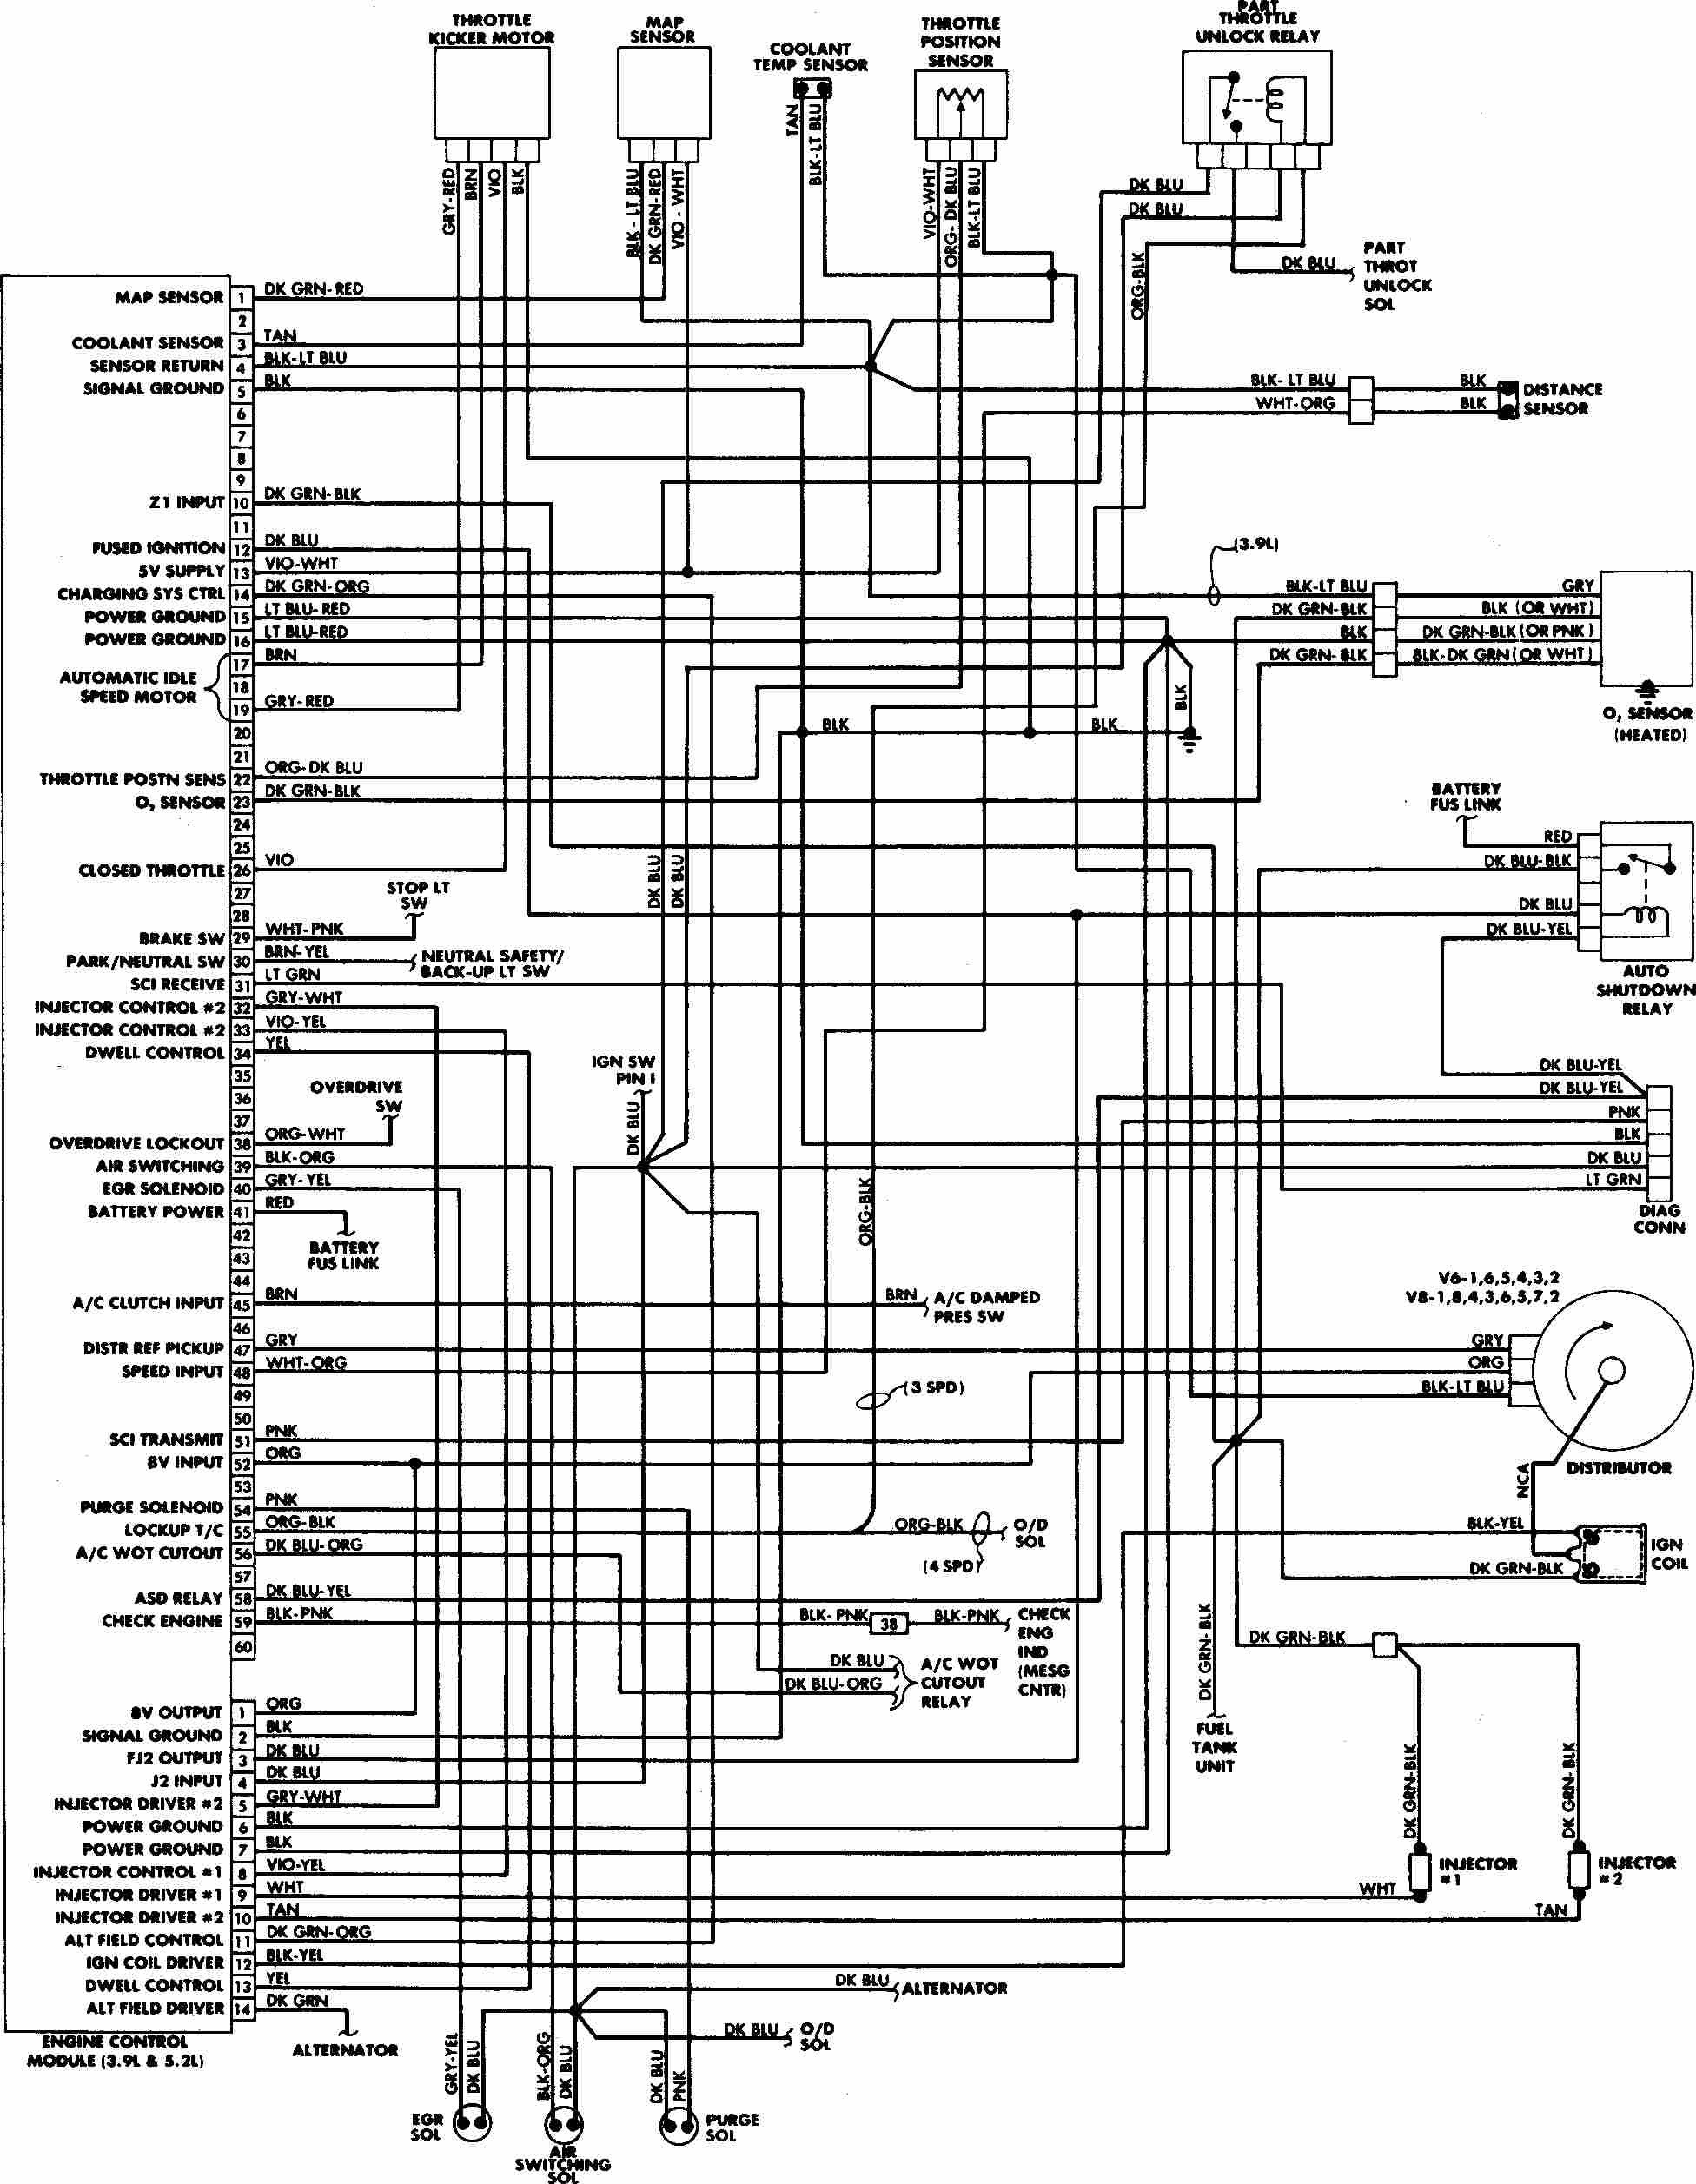 1995 Dodge Ram 2500 Diesel Wiring Diagram